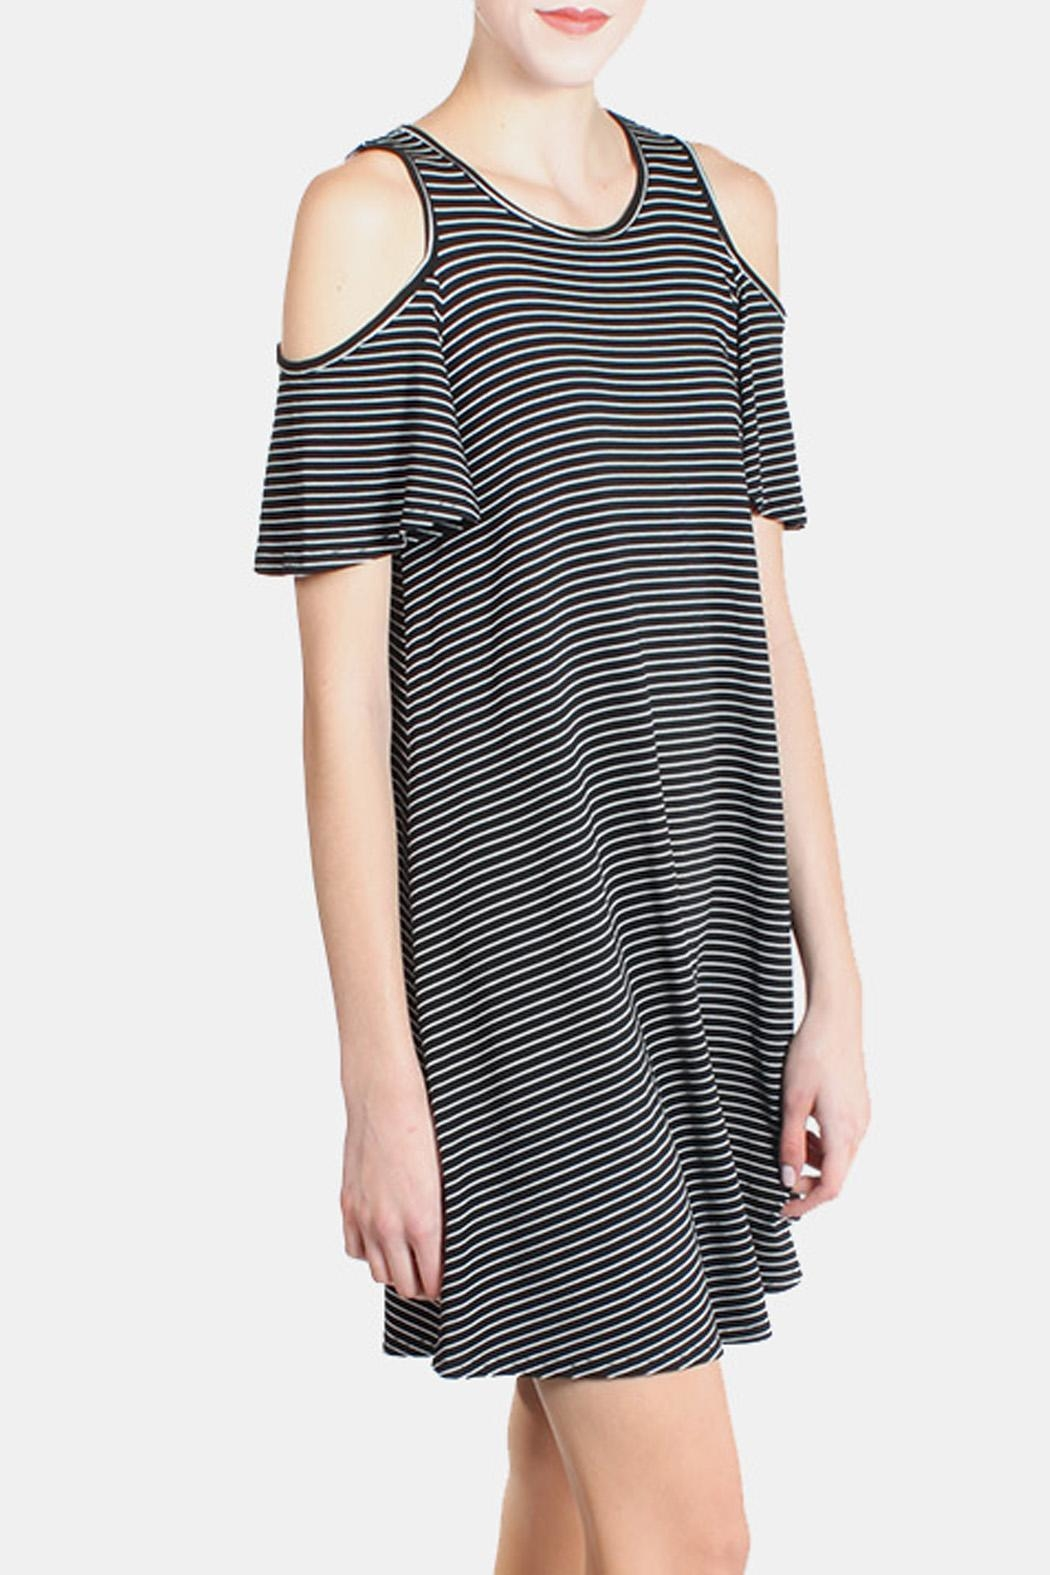 Chris & Carol Cold Shoulder Striped Dress - Back Cropped Image